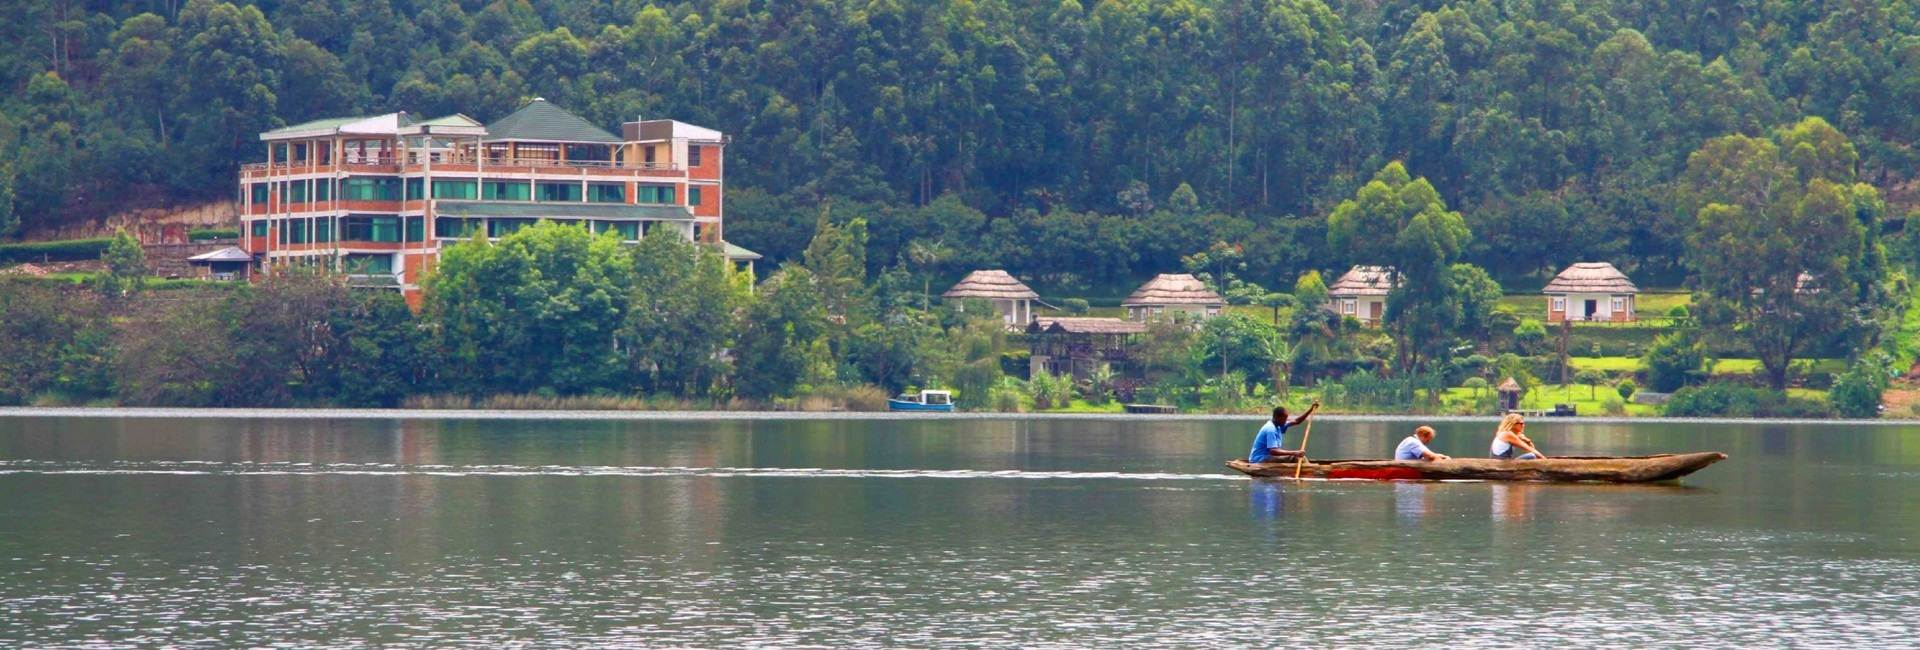 Bunyonyi Safaris Resort